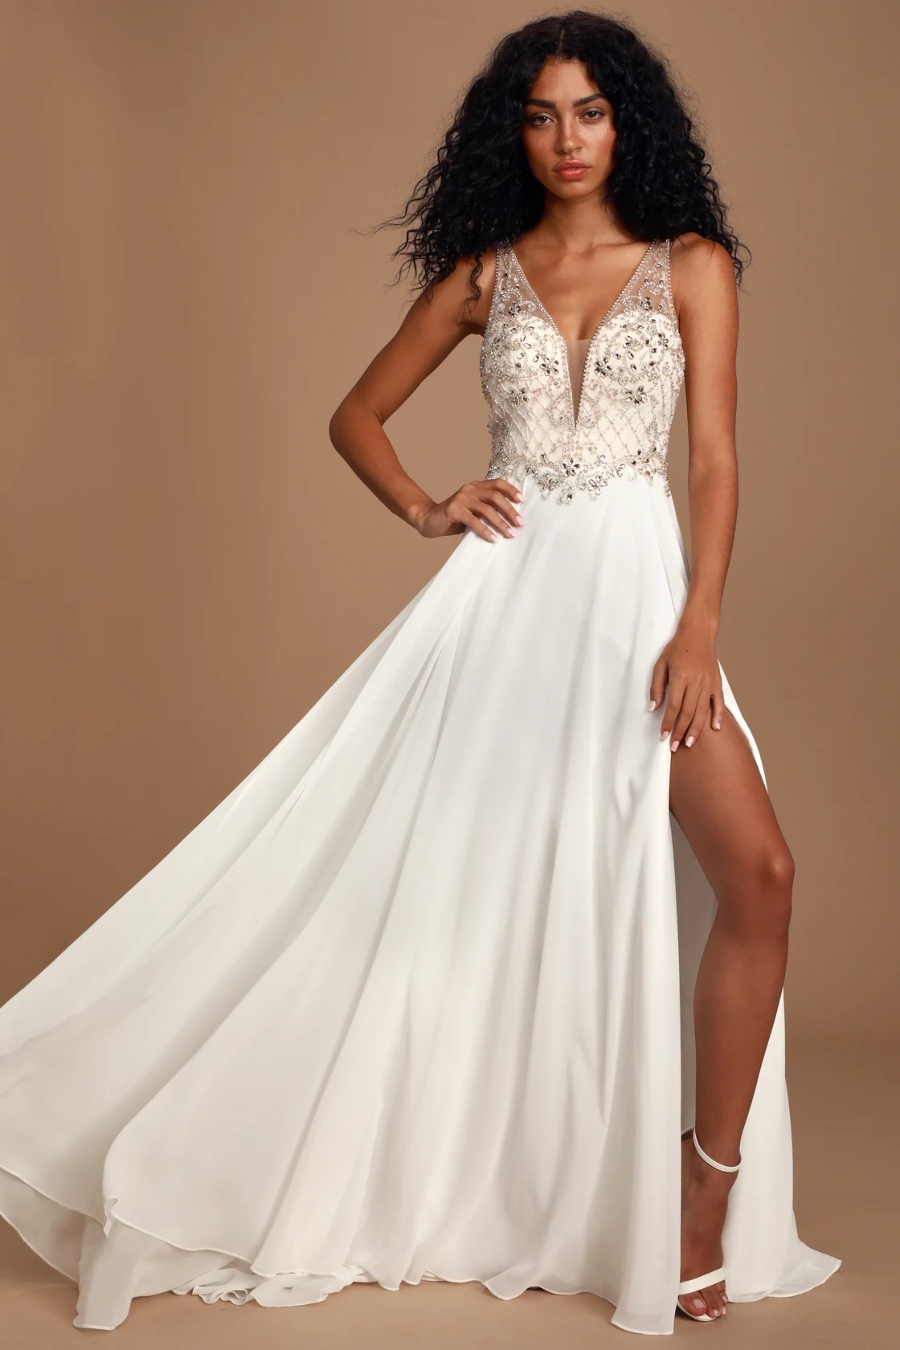 Genial Destination Wedding Dresses_5972 Ivor Yawah